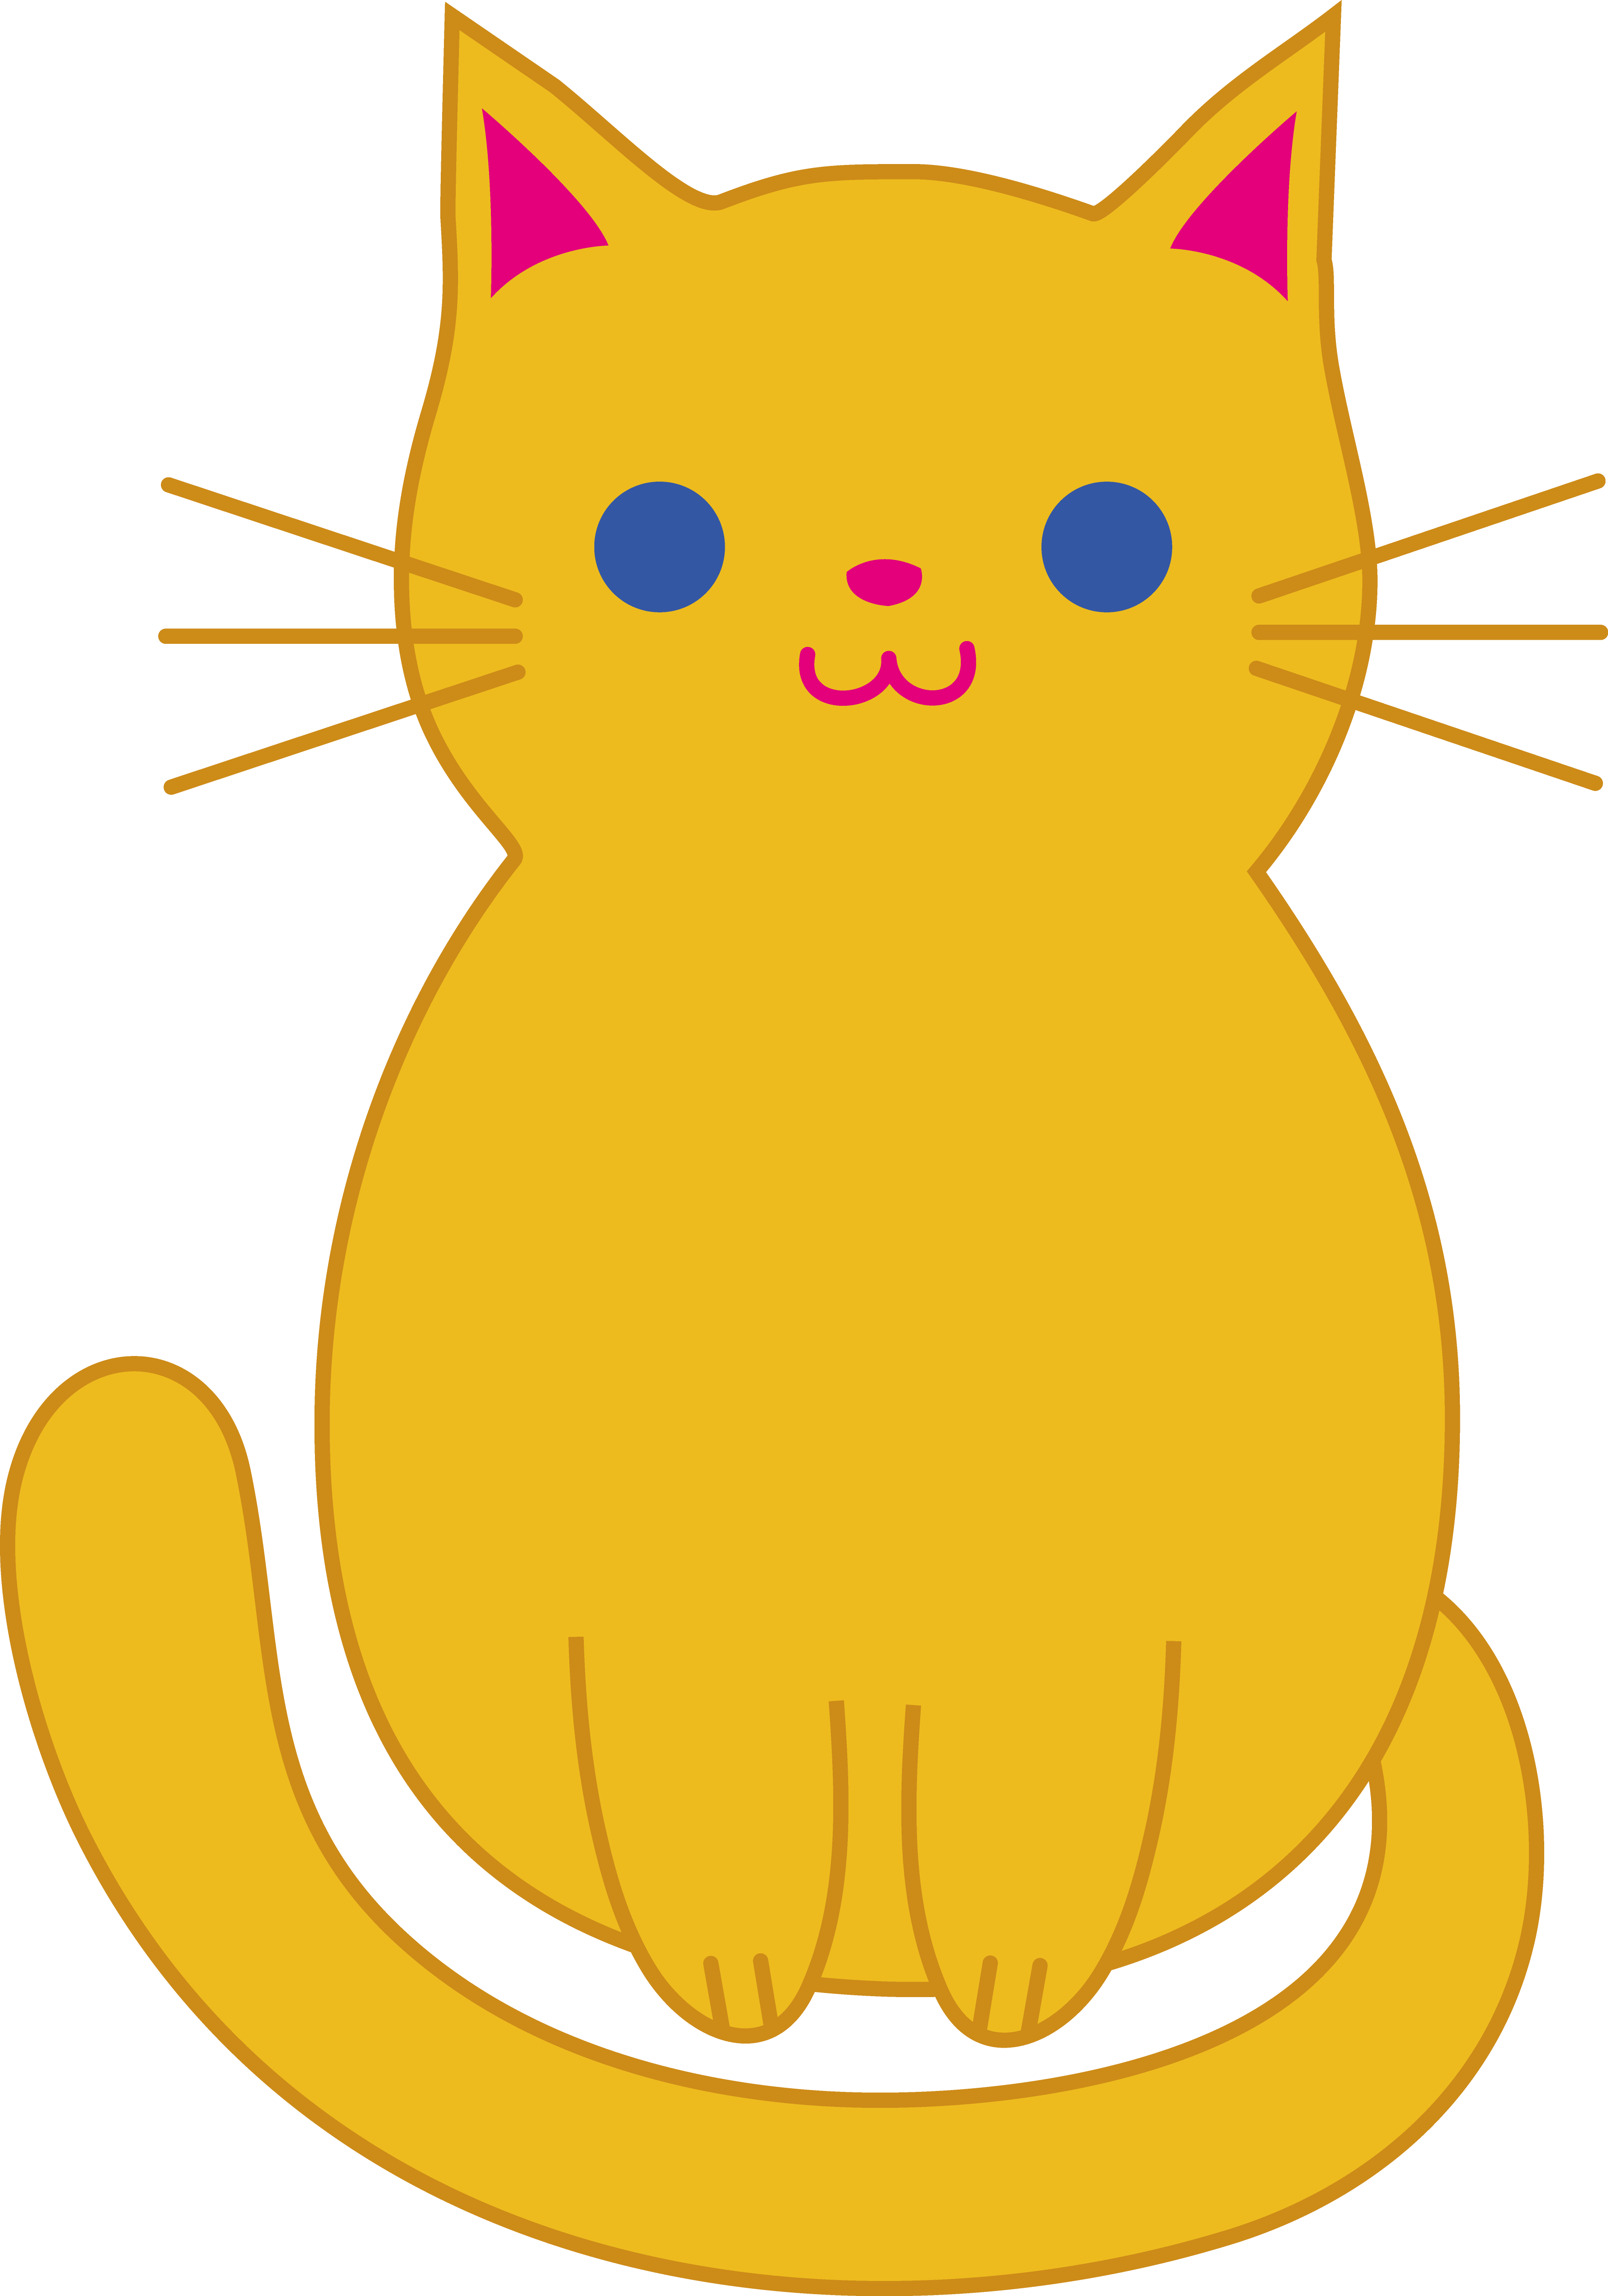 3528x5039 Fine Decoration Cat Clip Art Free Fat Cute Orange Kitten Cats